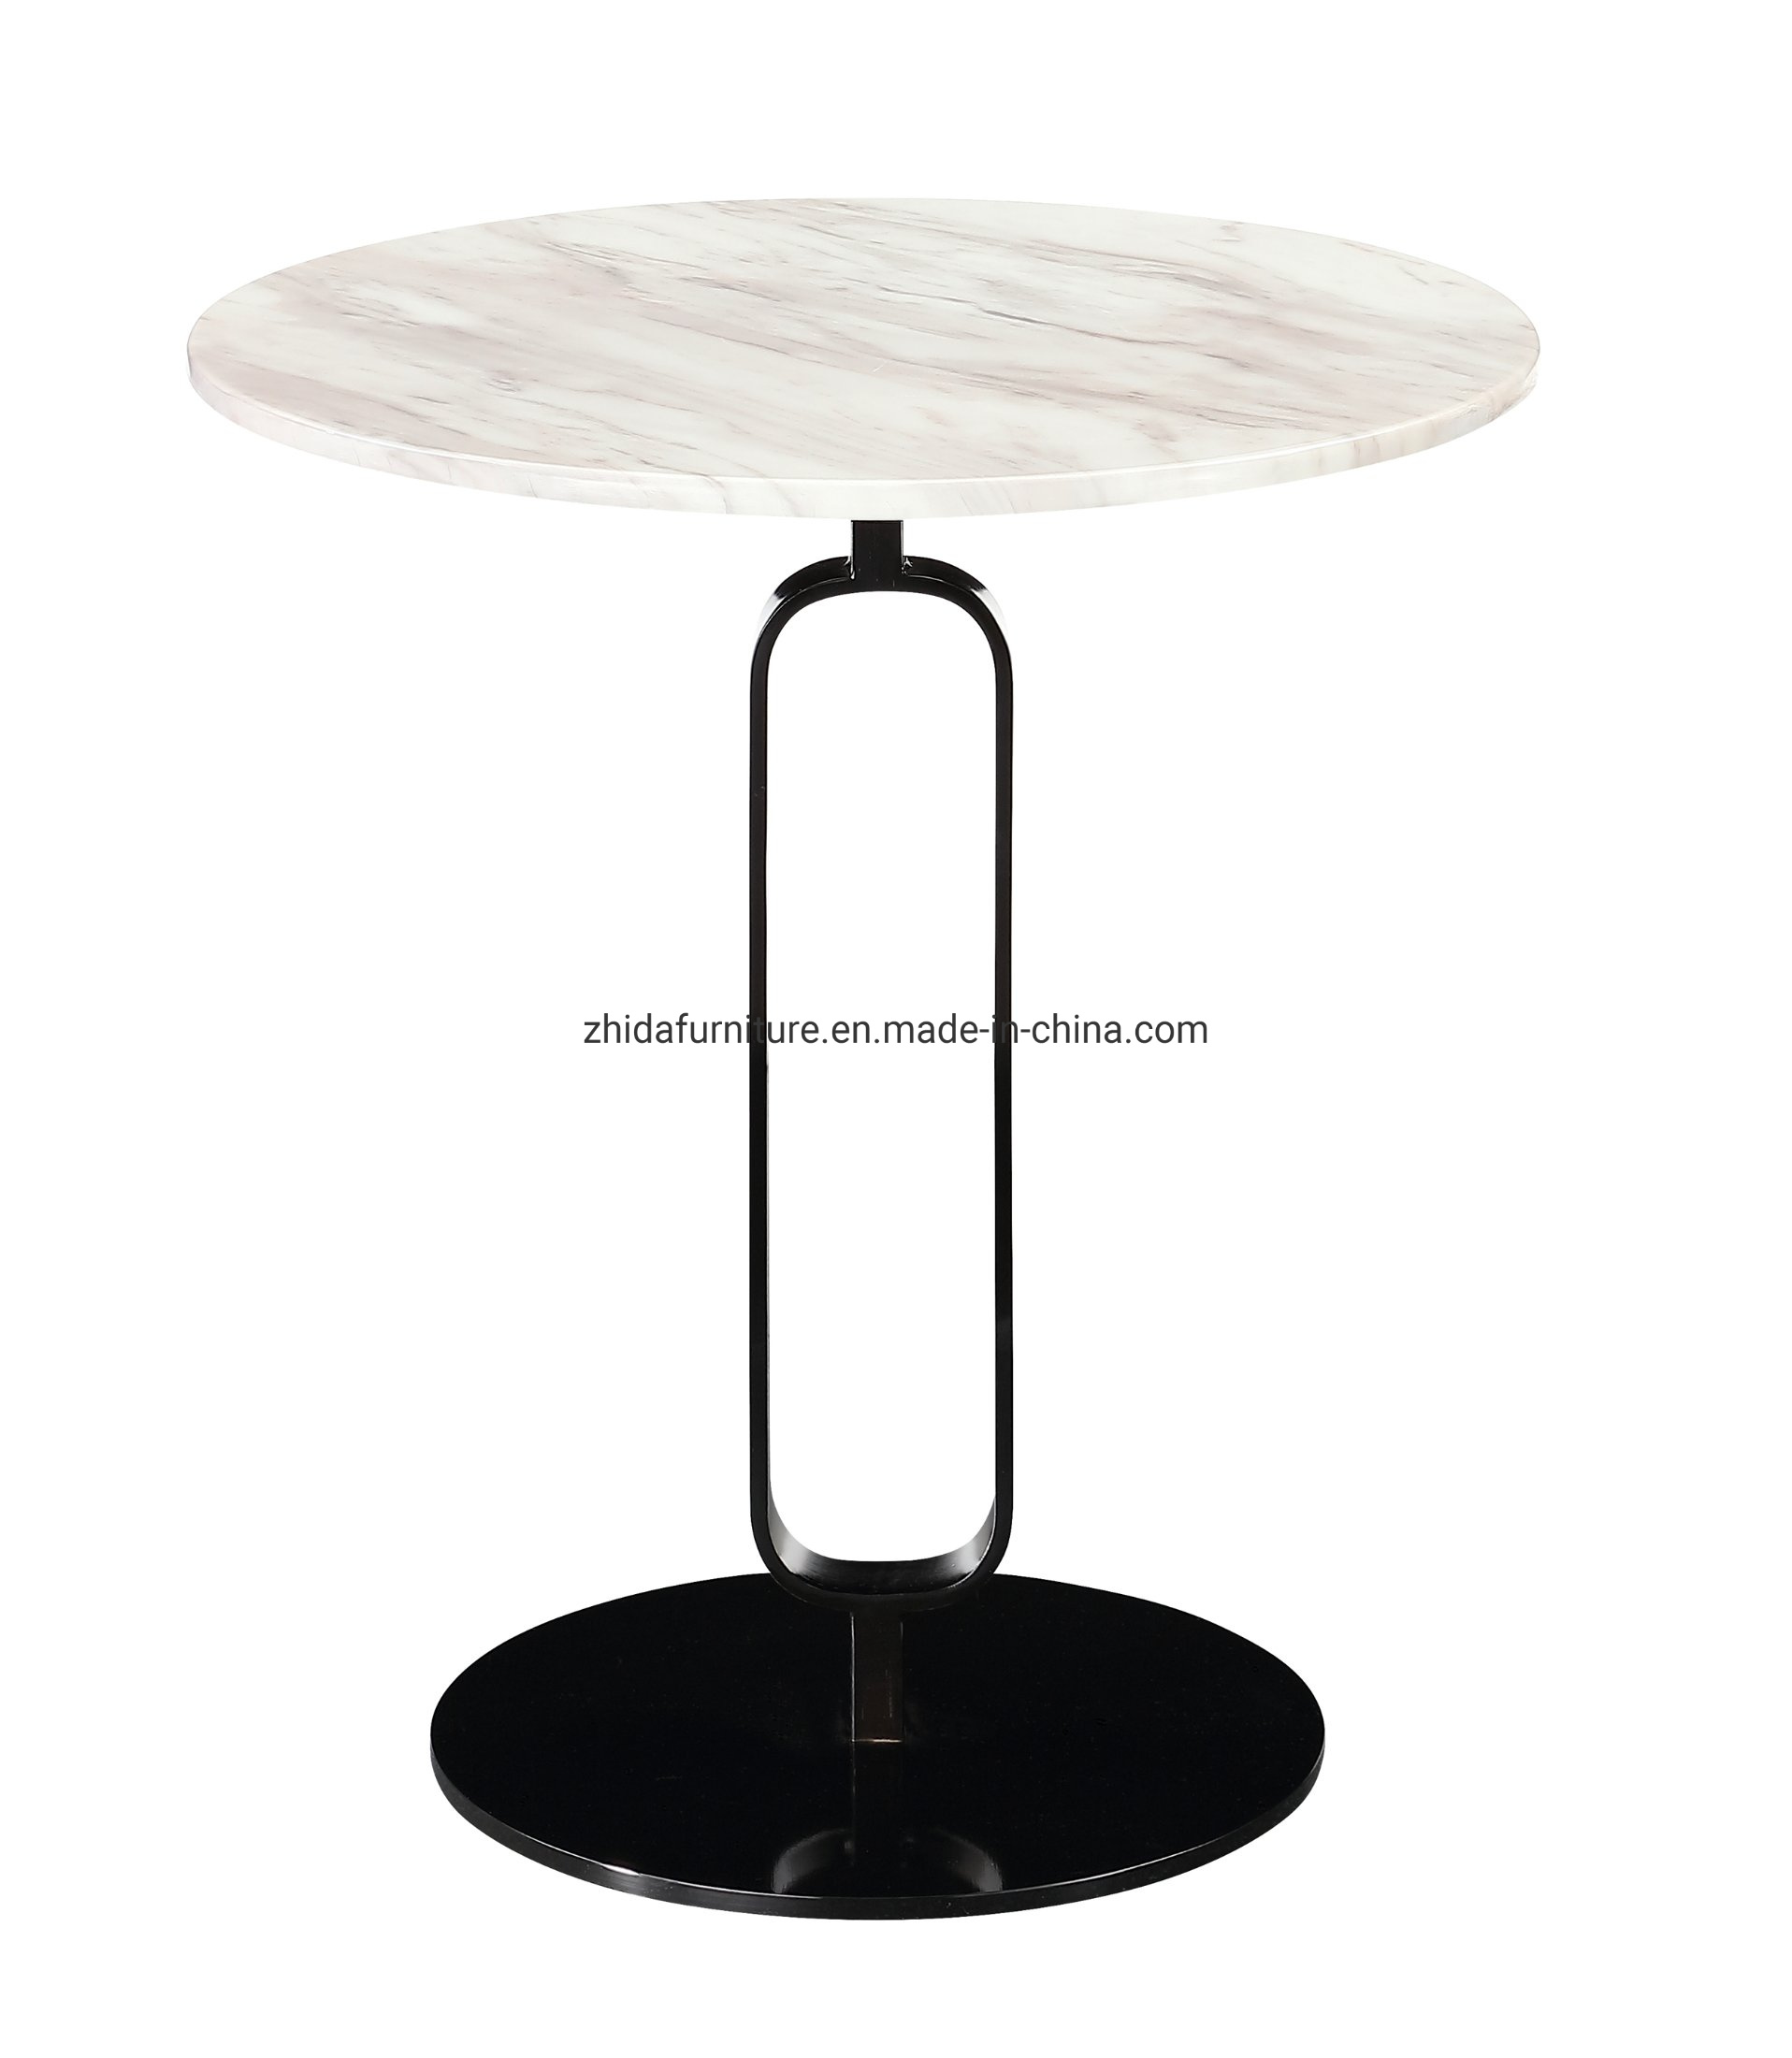 China Modern Design Stainless Steel Round Marble Side Coffee Table China Marble Table Stainless Steel Table